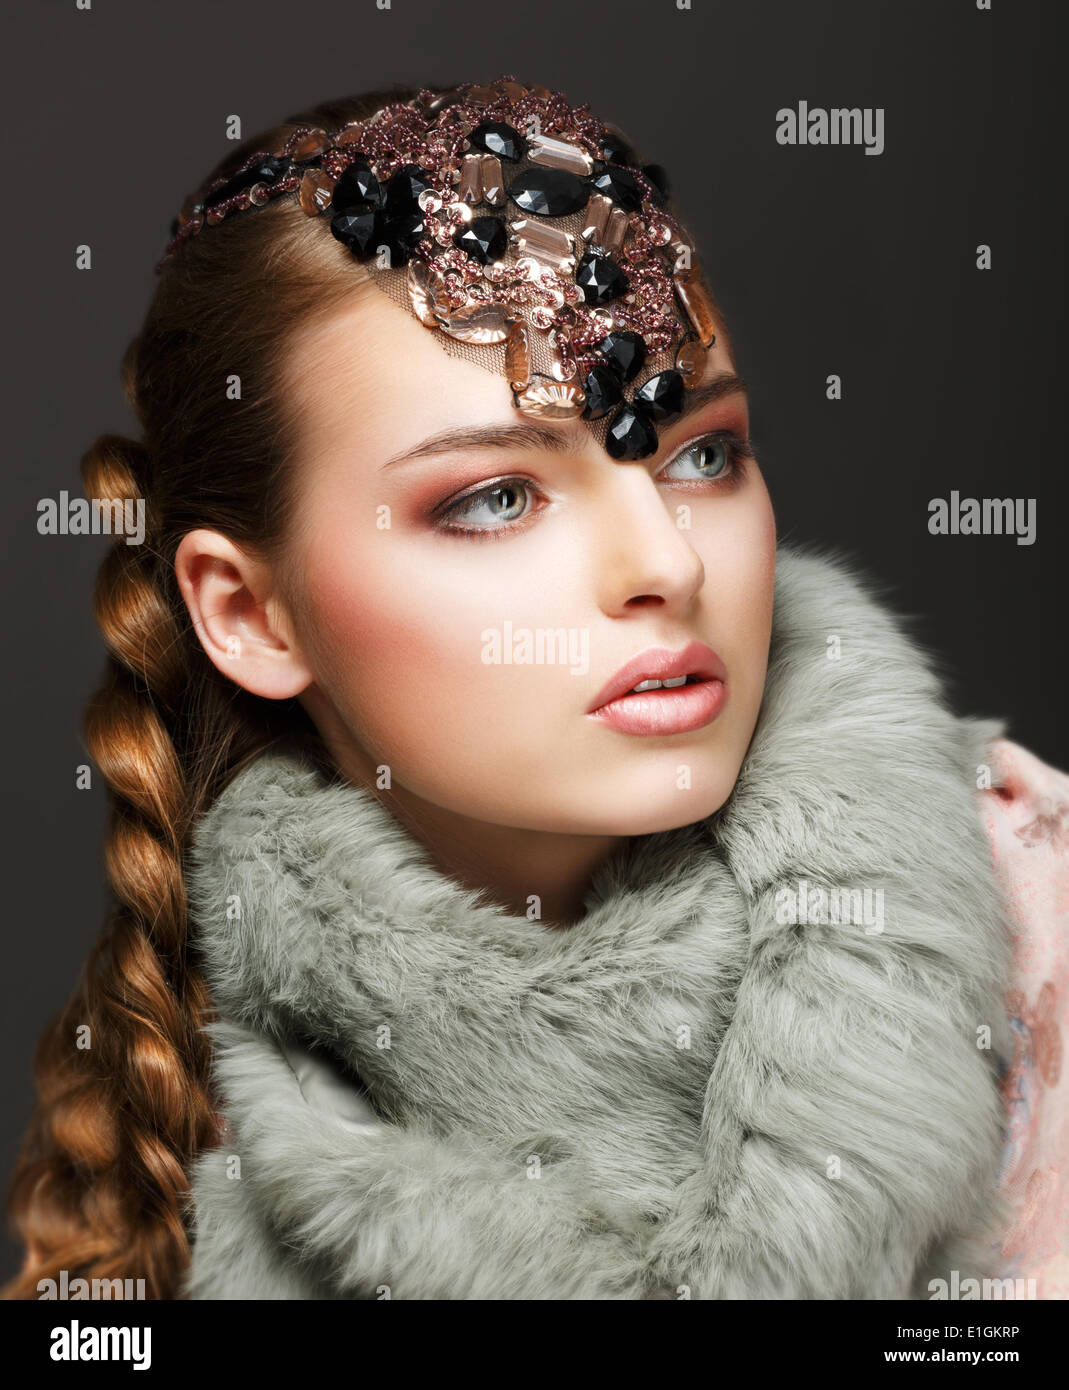 Braided Hair Luxurious Woman in Fur Collar and Gemstones. Jewels - Stock Image